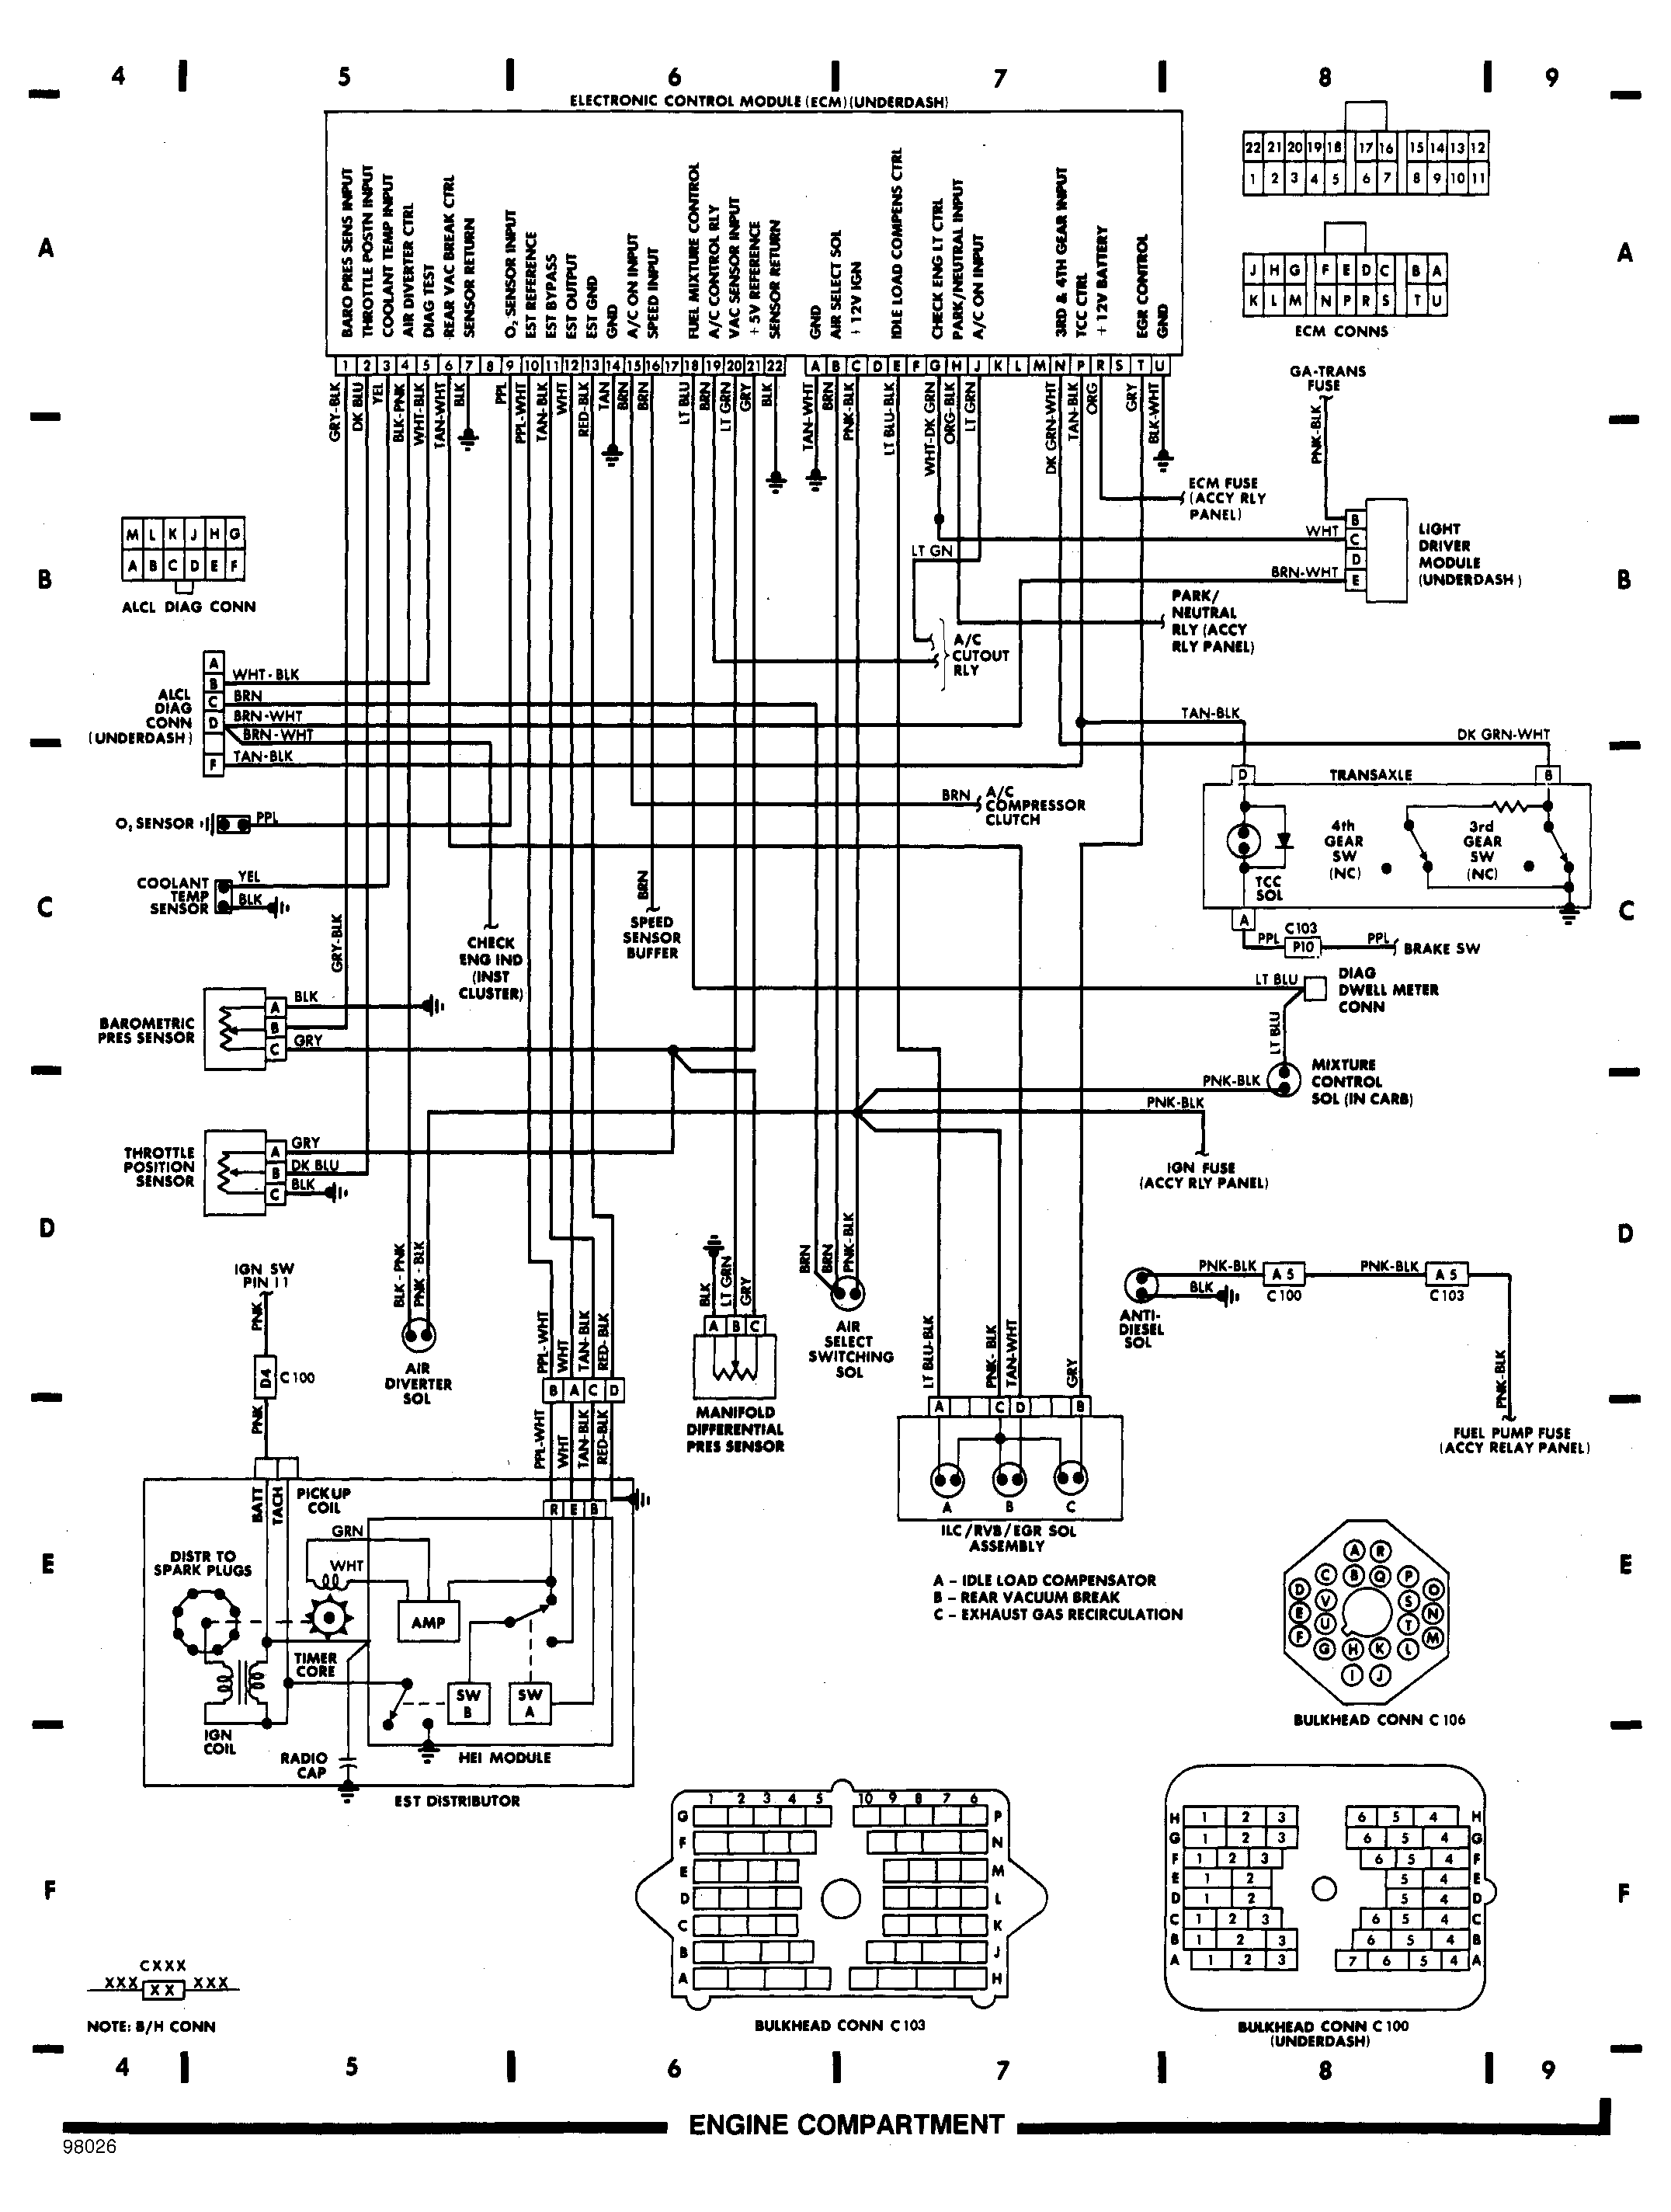 wiring diagram of 4 9 cadillac house wiring diagram symbols \u2022 xlr 1 4 mic cable wiring diagram 1992 cadillac brougham wiring diagram wiring diagram u2022 rh msblog co 2005 cadillac xlr wiring diagrams 2005 cadillac xlr wiring diagrams